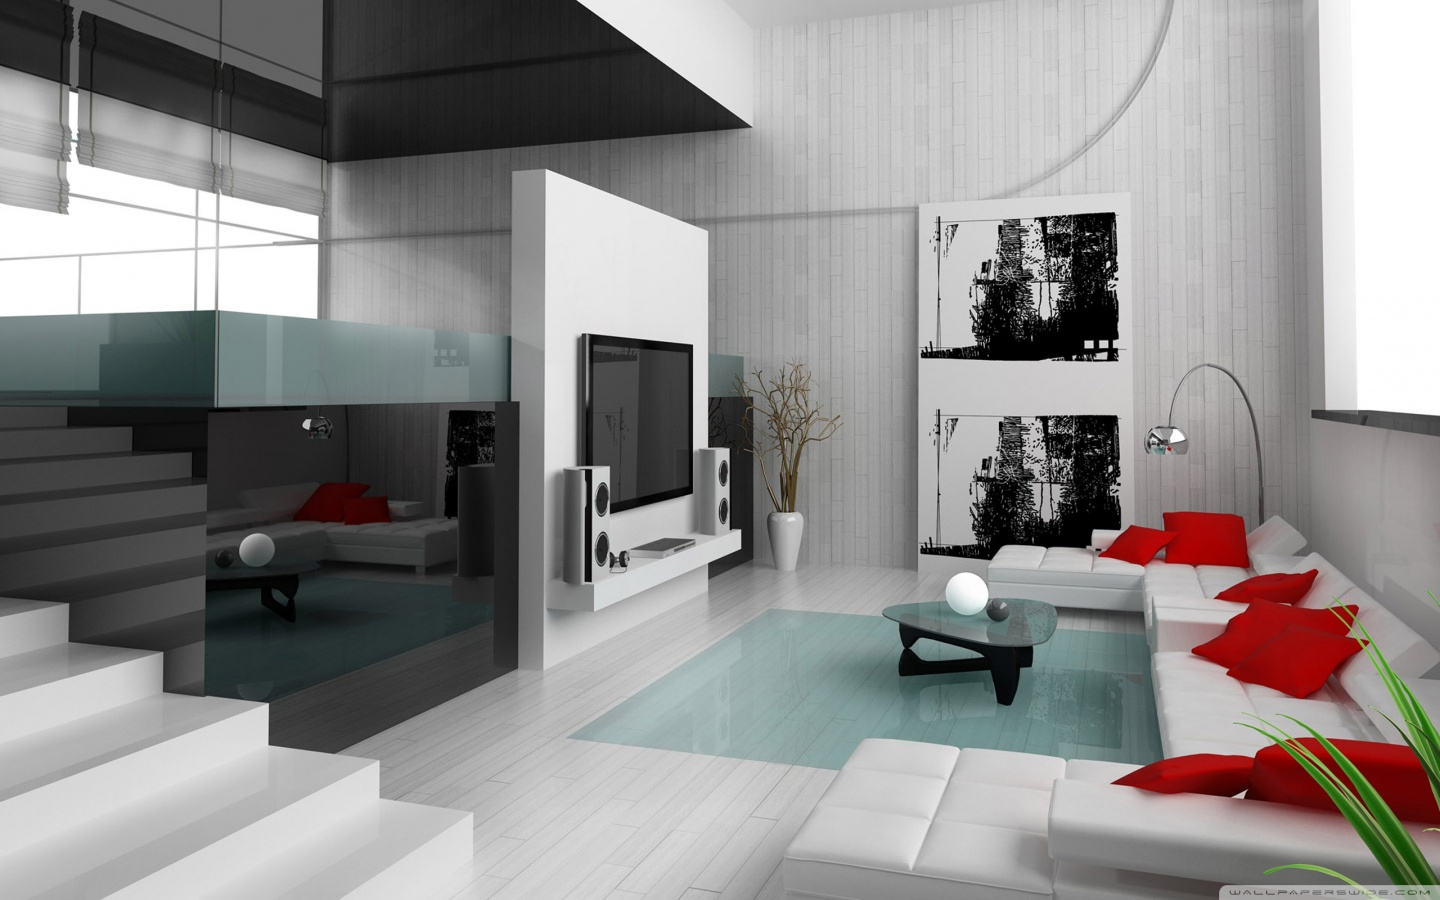 Minimalist interior design imagination art architecture for Modern minimalist house interior design